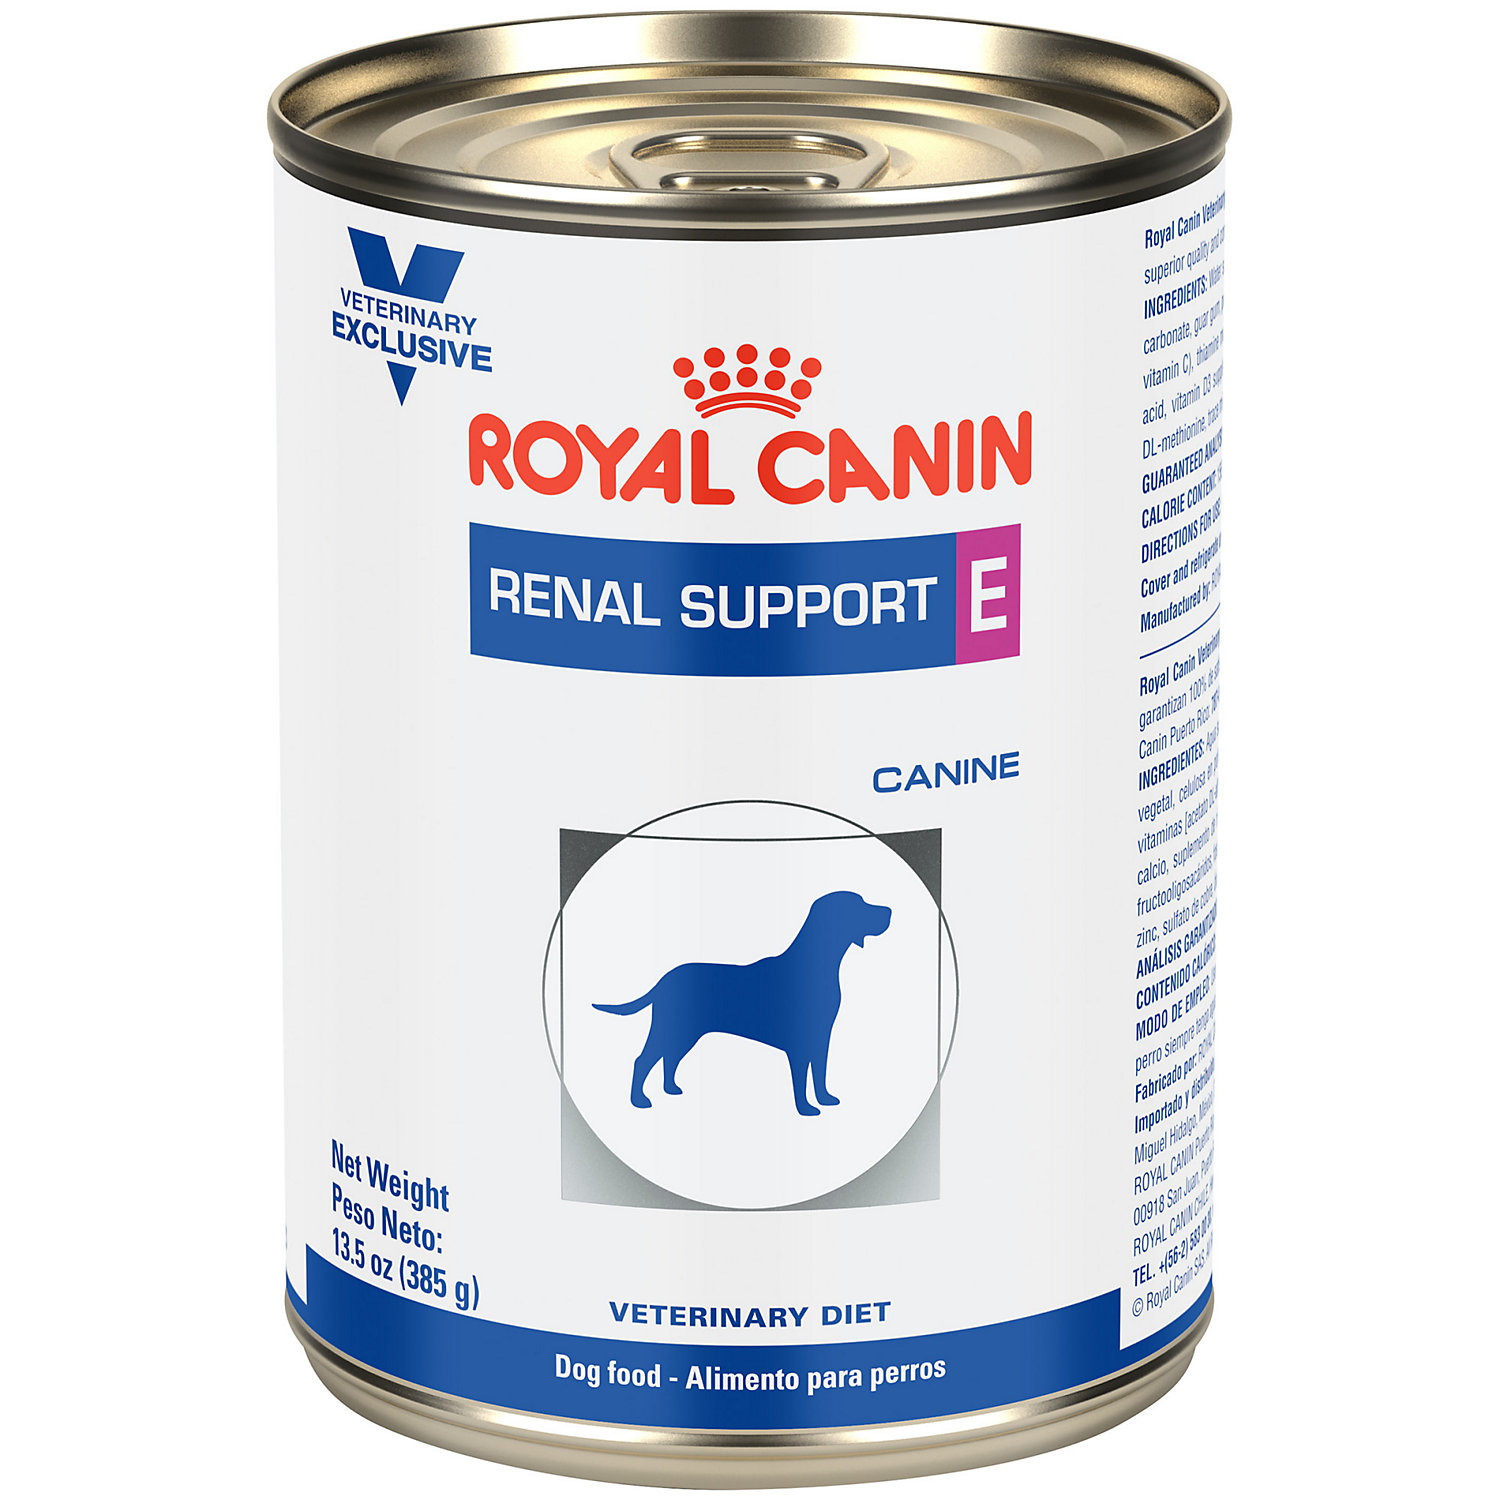 Royal Canin Veterinary Diet Canine Renal Support E Loaf In Sauce Wet Dog Food